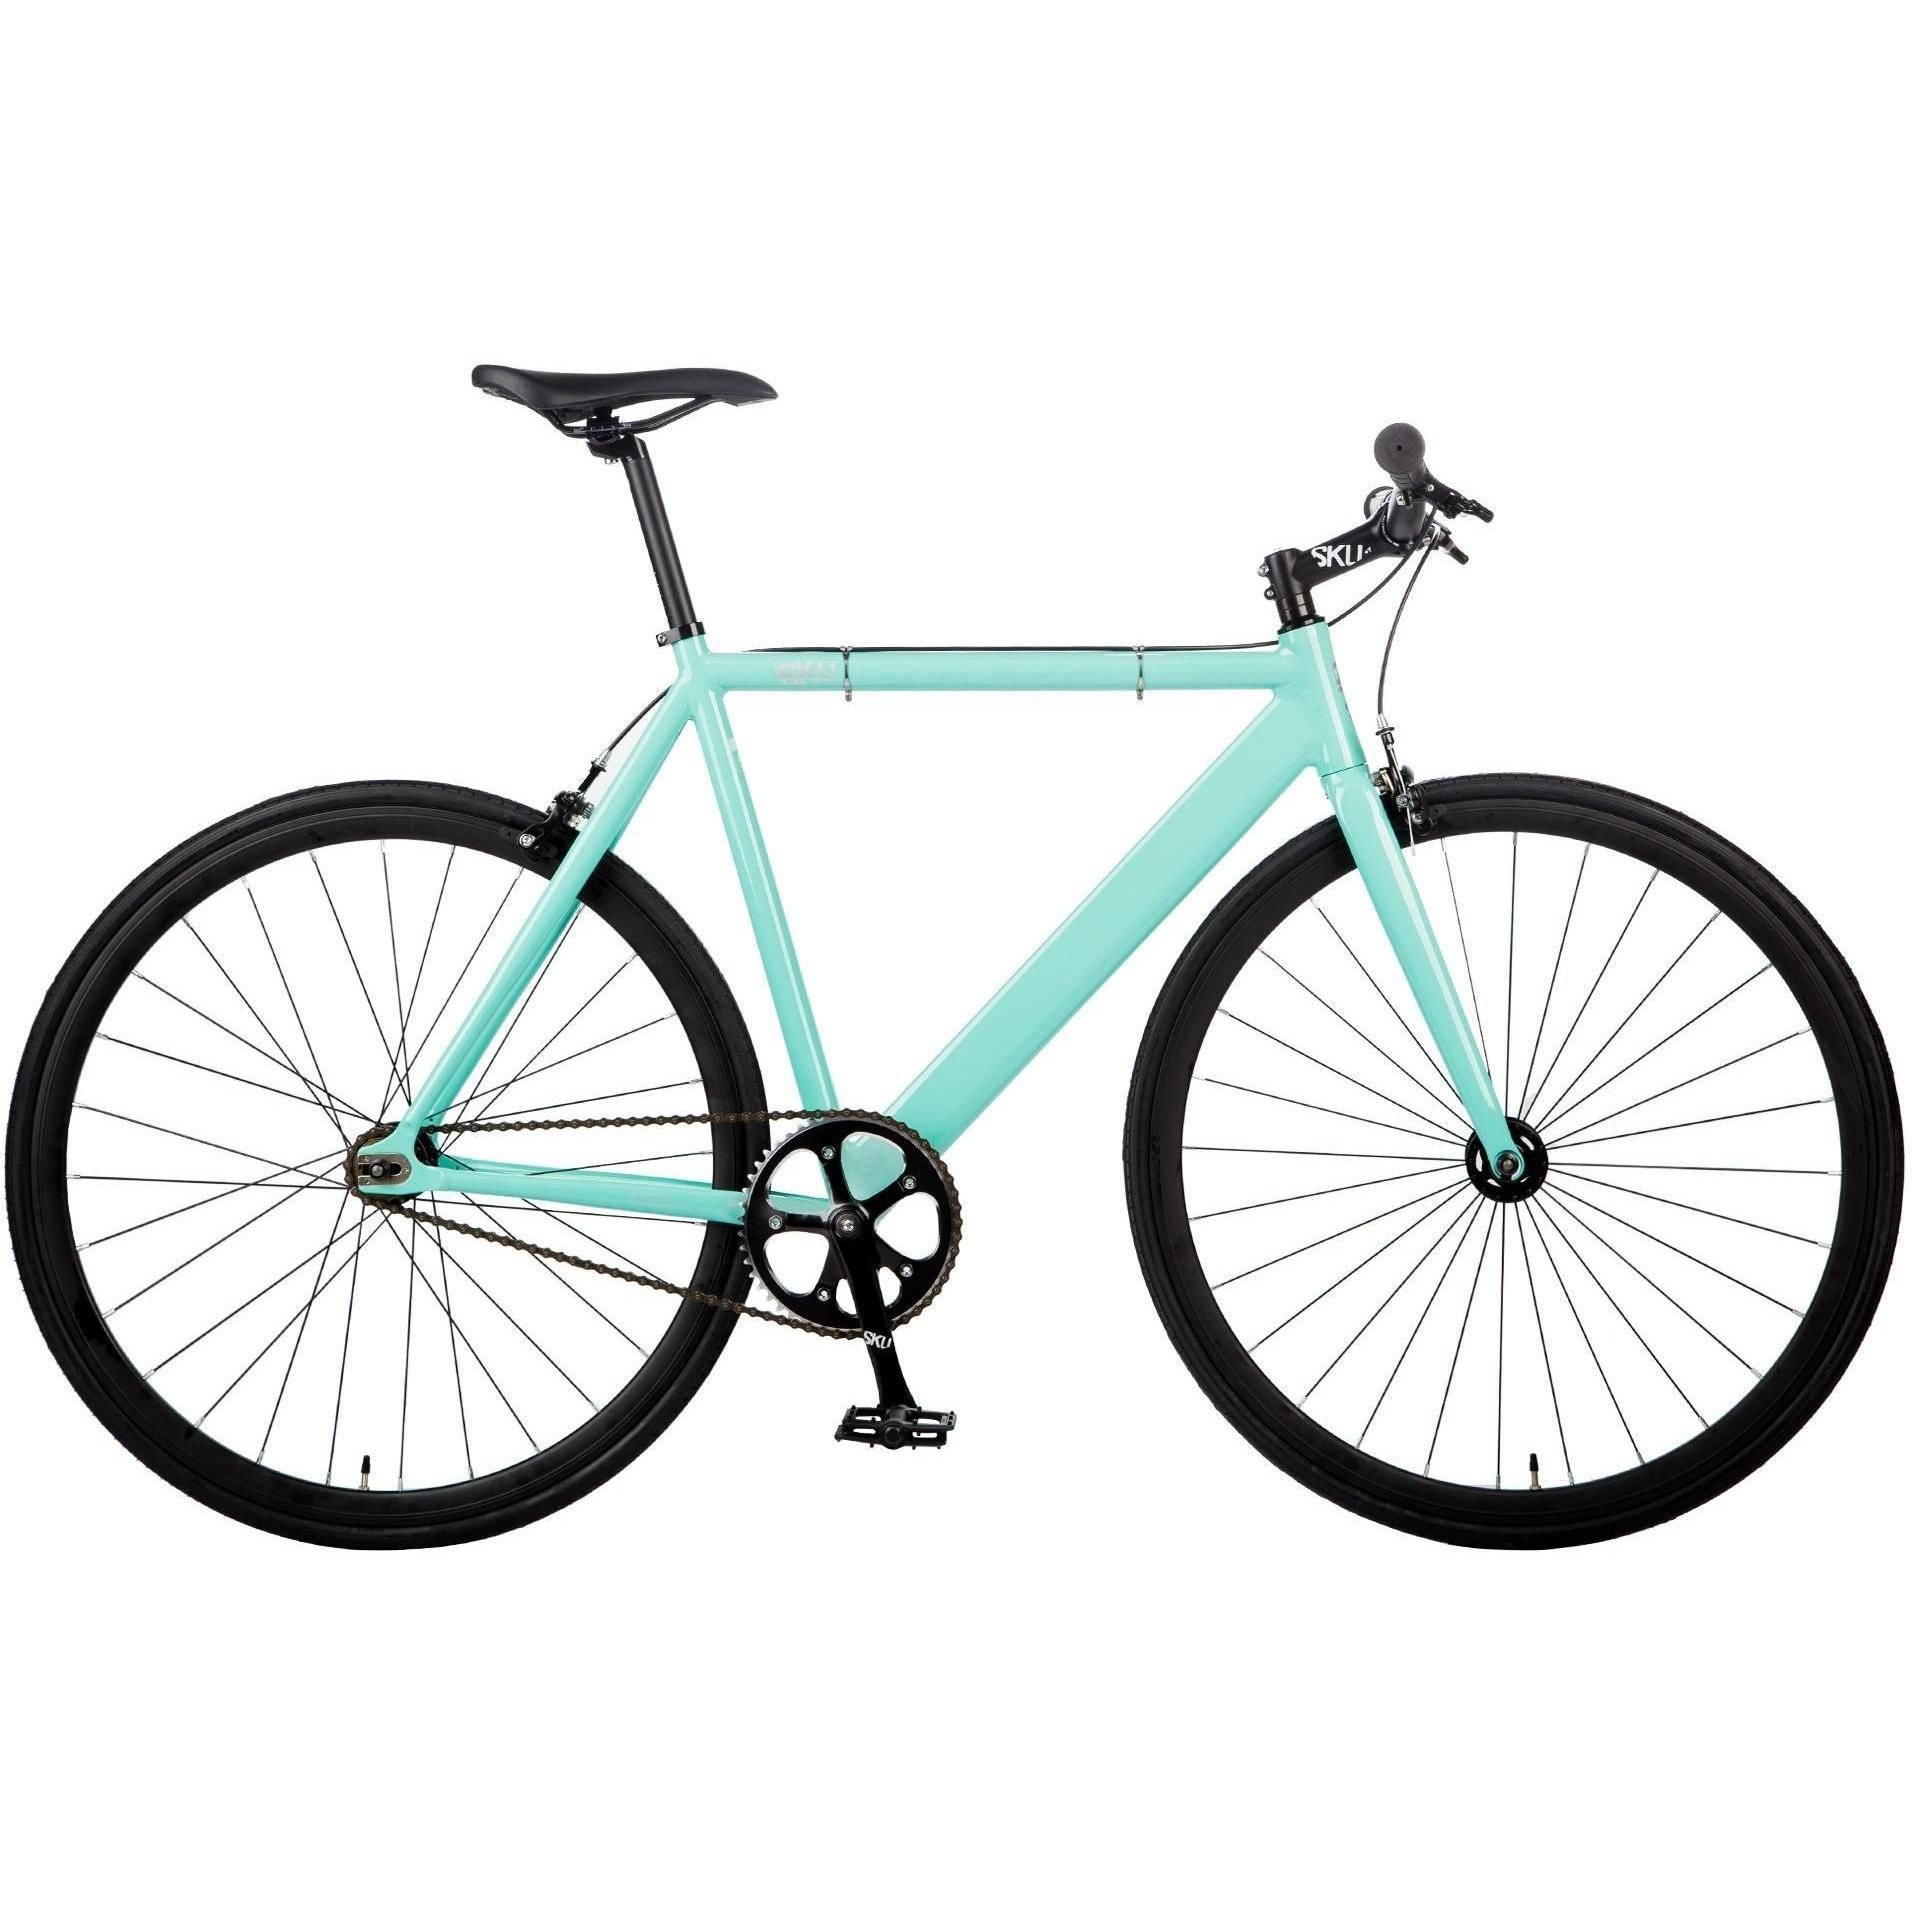 6KU | Fixed Track Celeste Complete Aluminum Frame Single Speed Bike ...